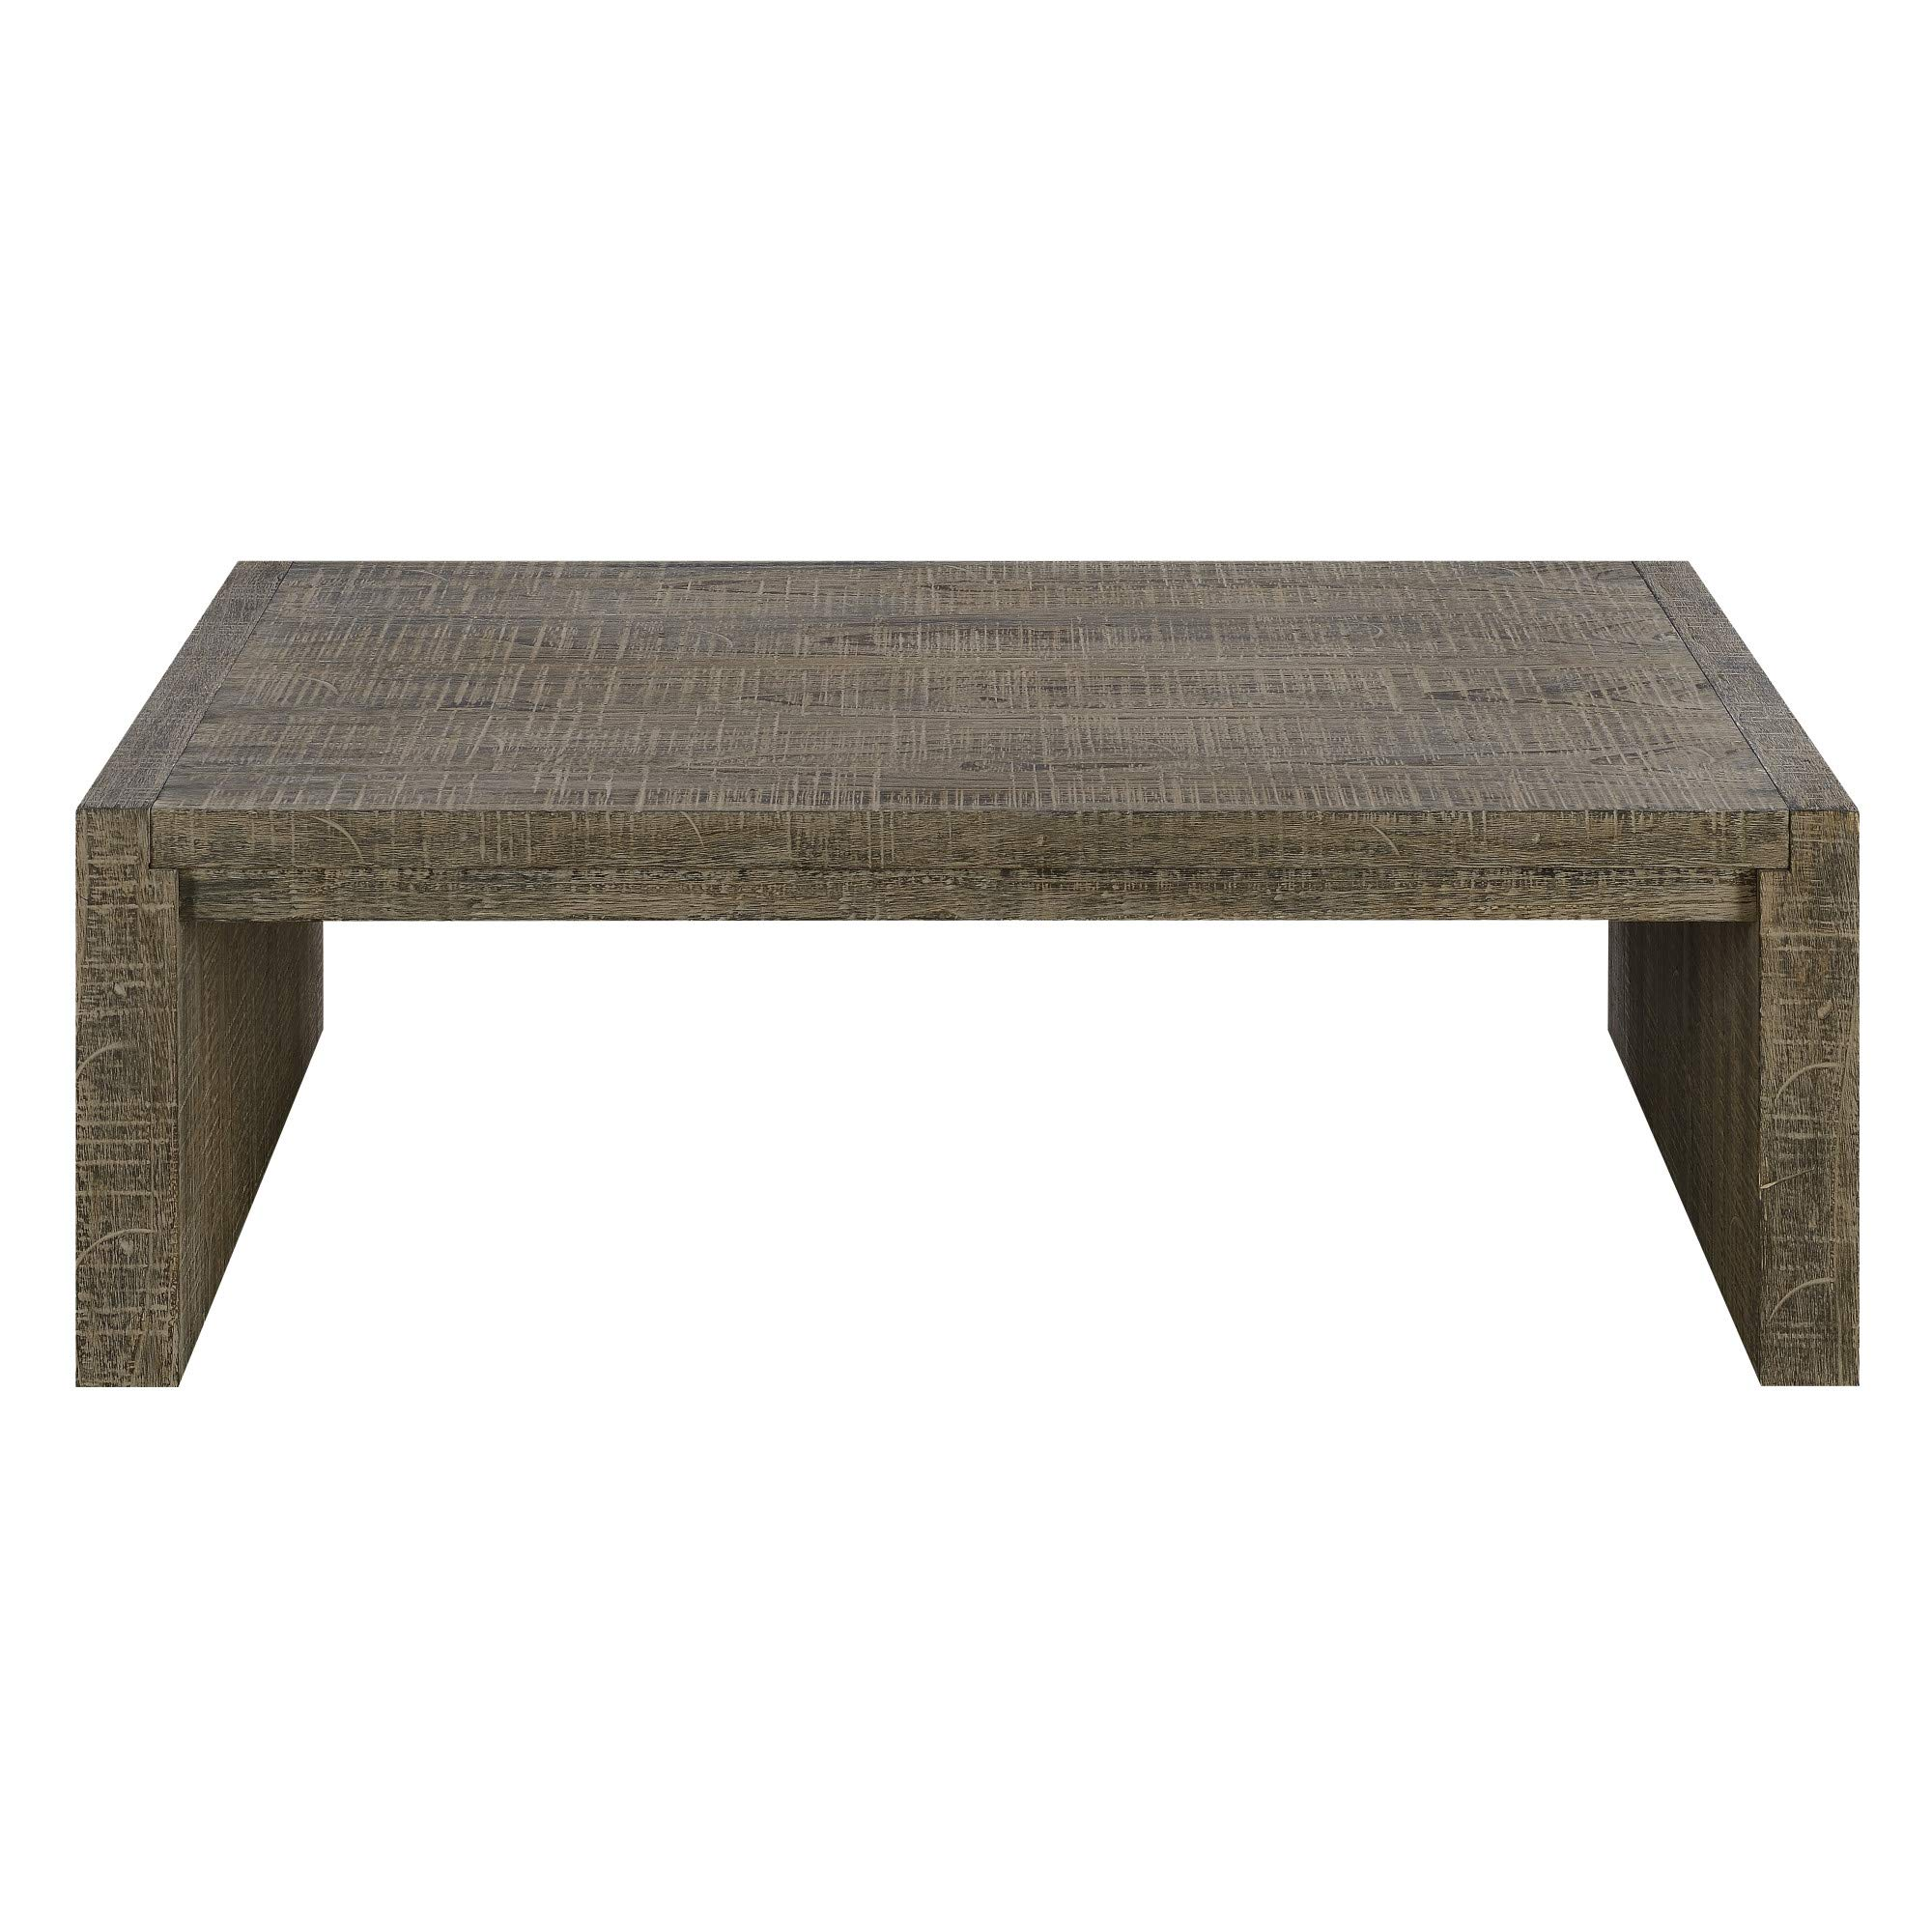 Deckland 48'' Coffee Table in Mustang Gray with Plank Style Top And Waterfall Ends, by Artum Hill